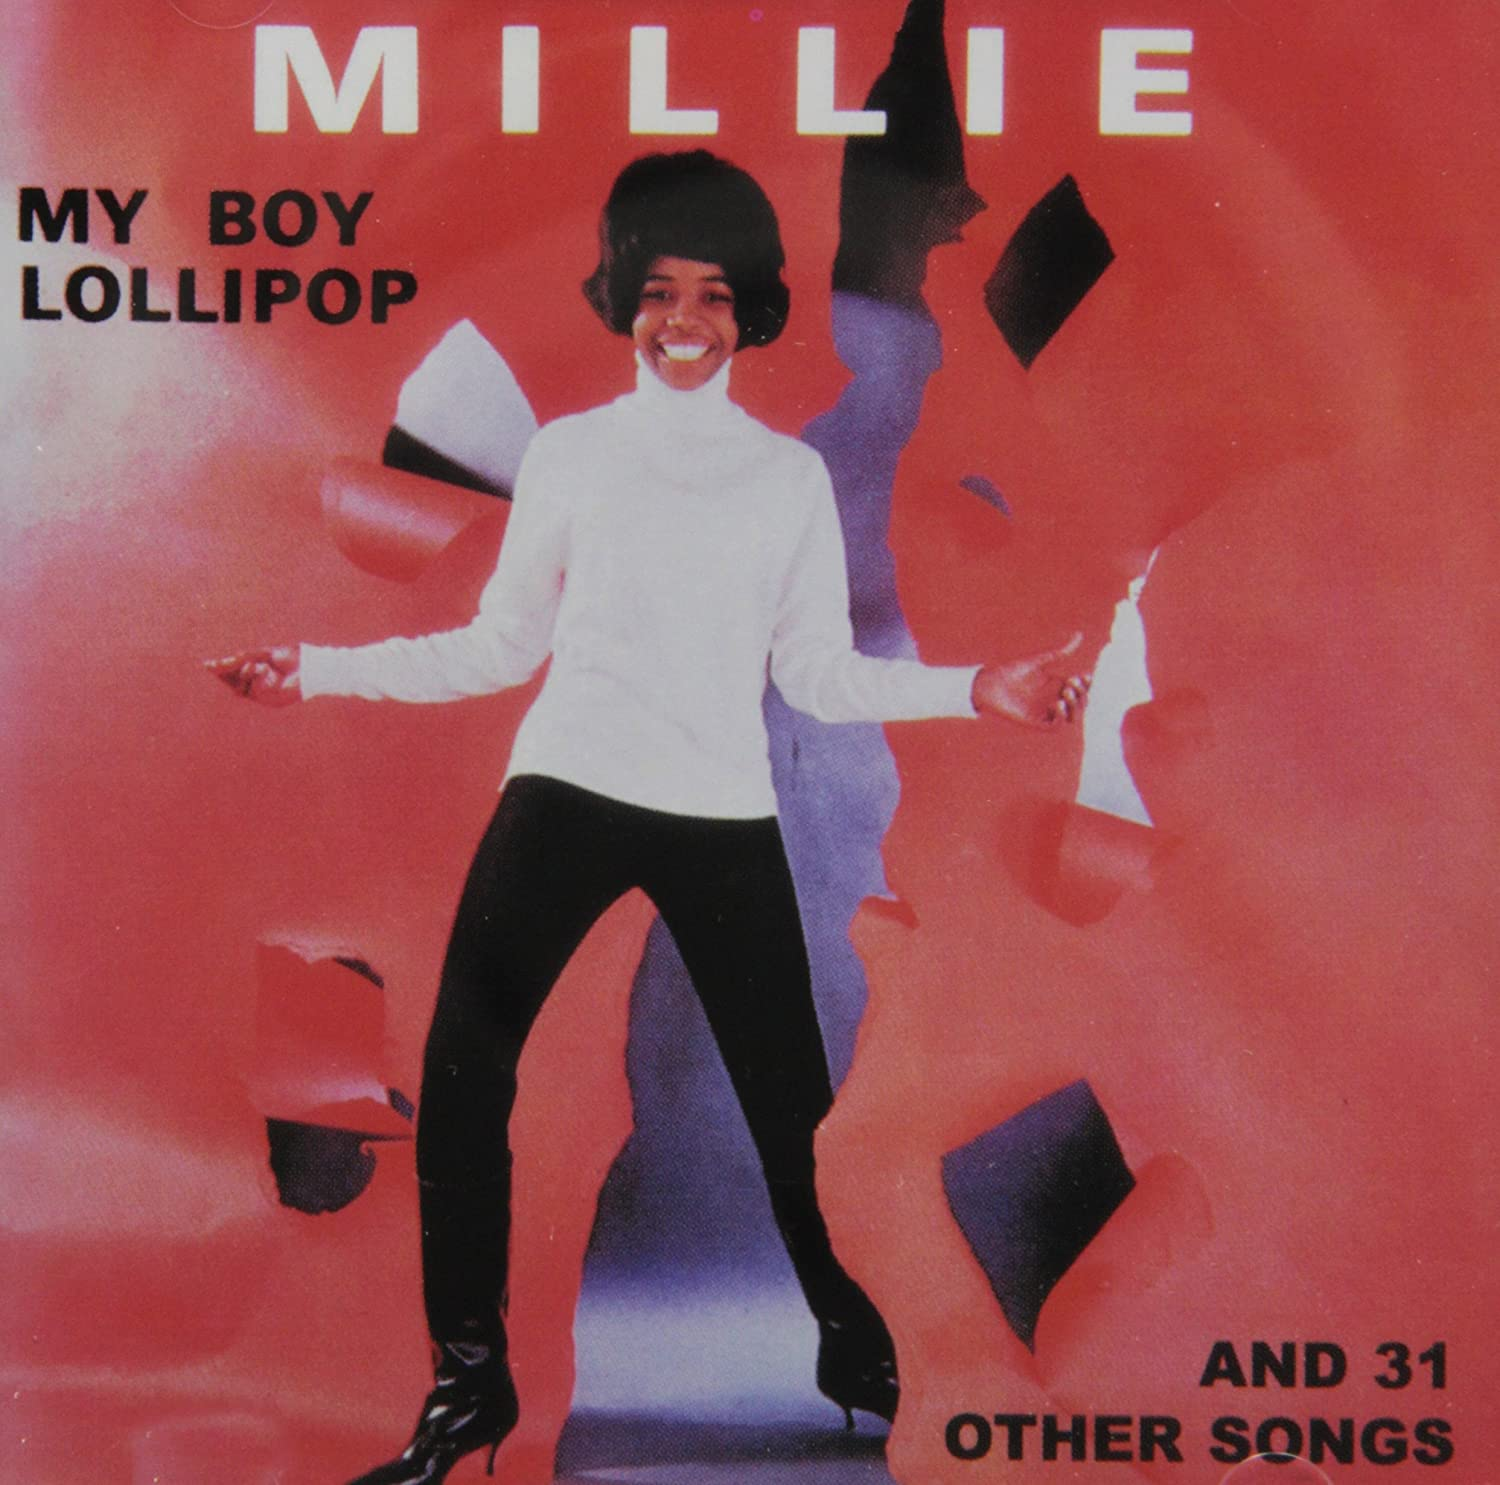 My Boy Lollipop was a #1 hit in the USA in 1964.